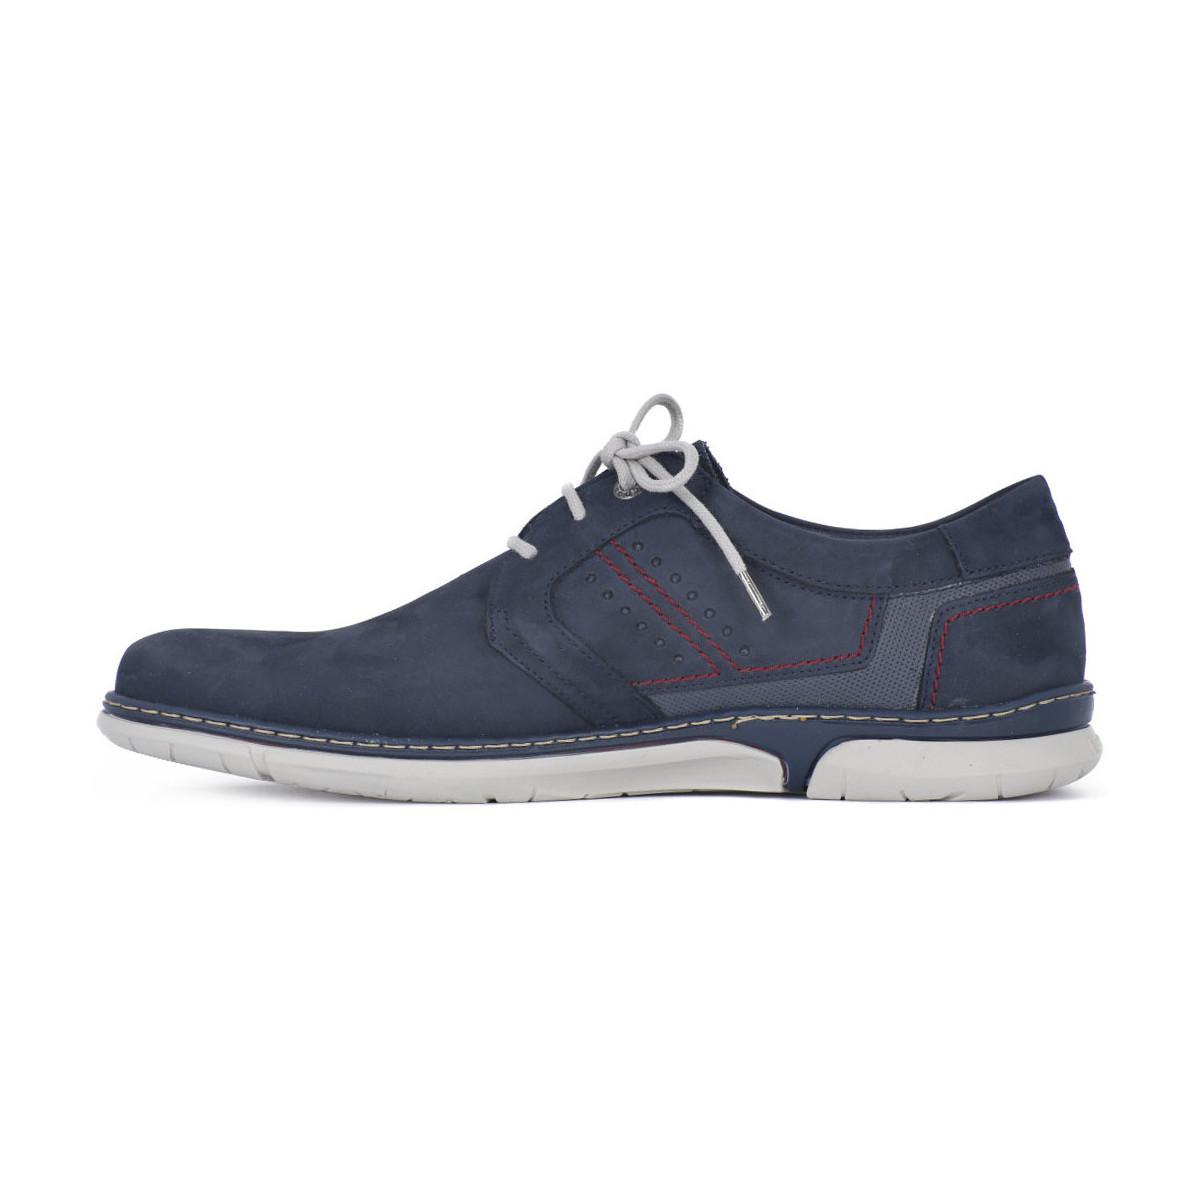 Fluchos Creta Vacheta Marino Men's Casual Shoes In Blue for Men